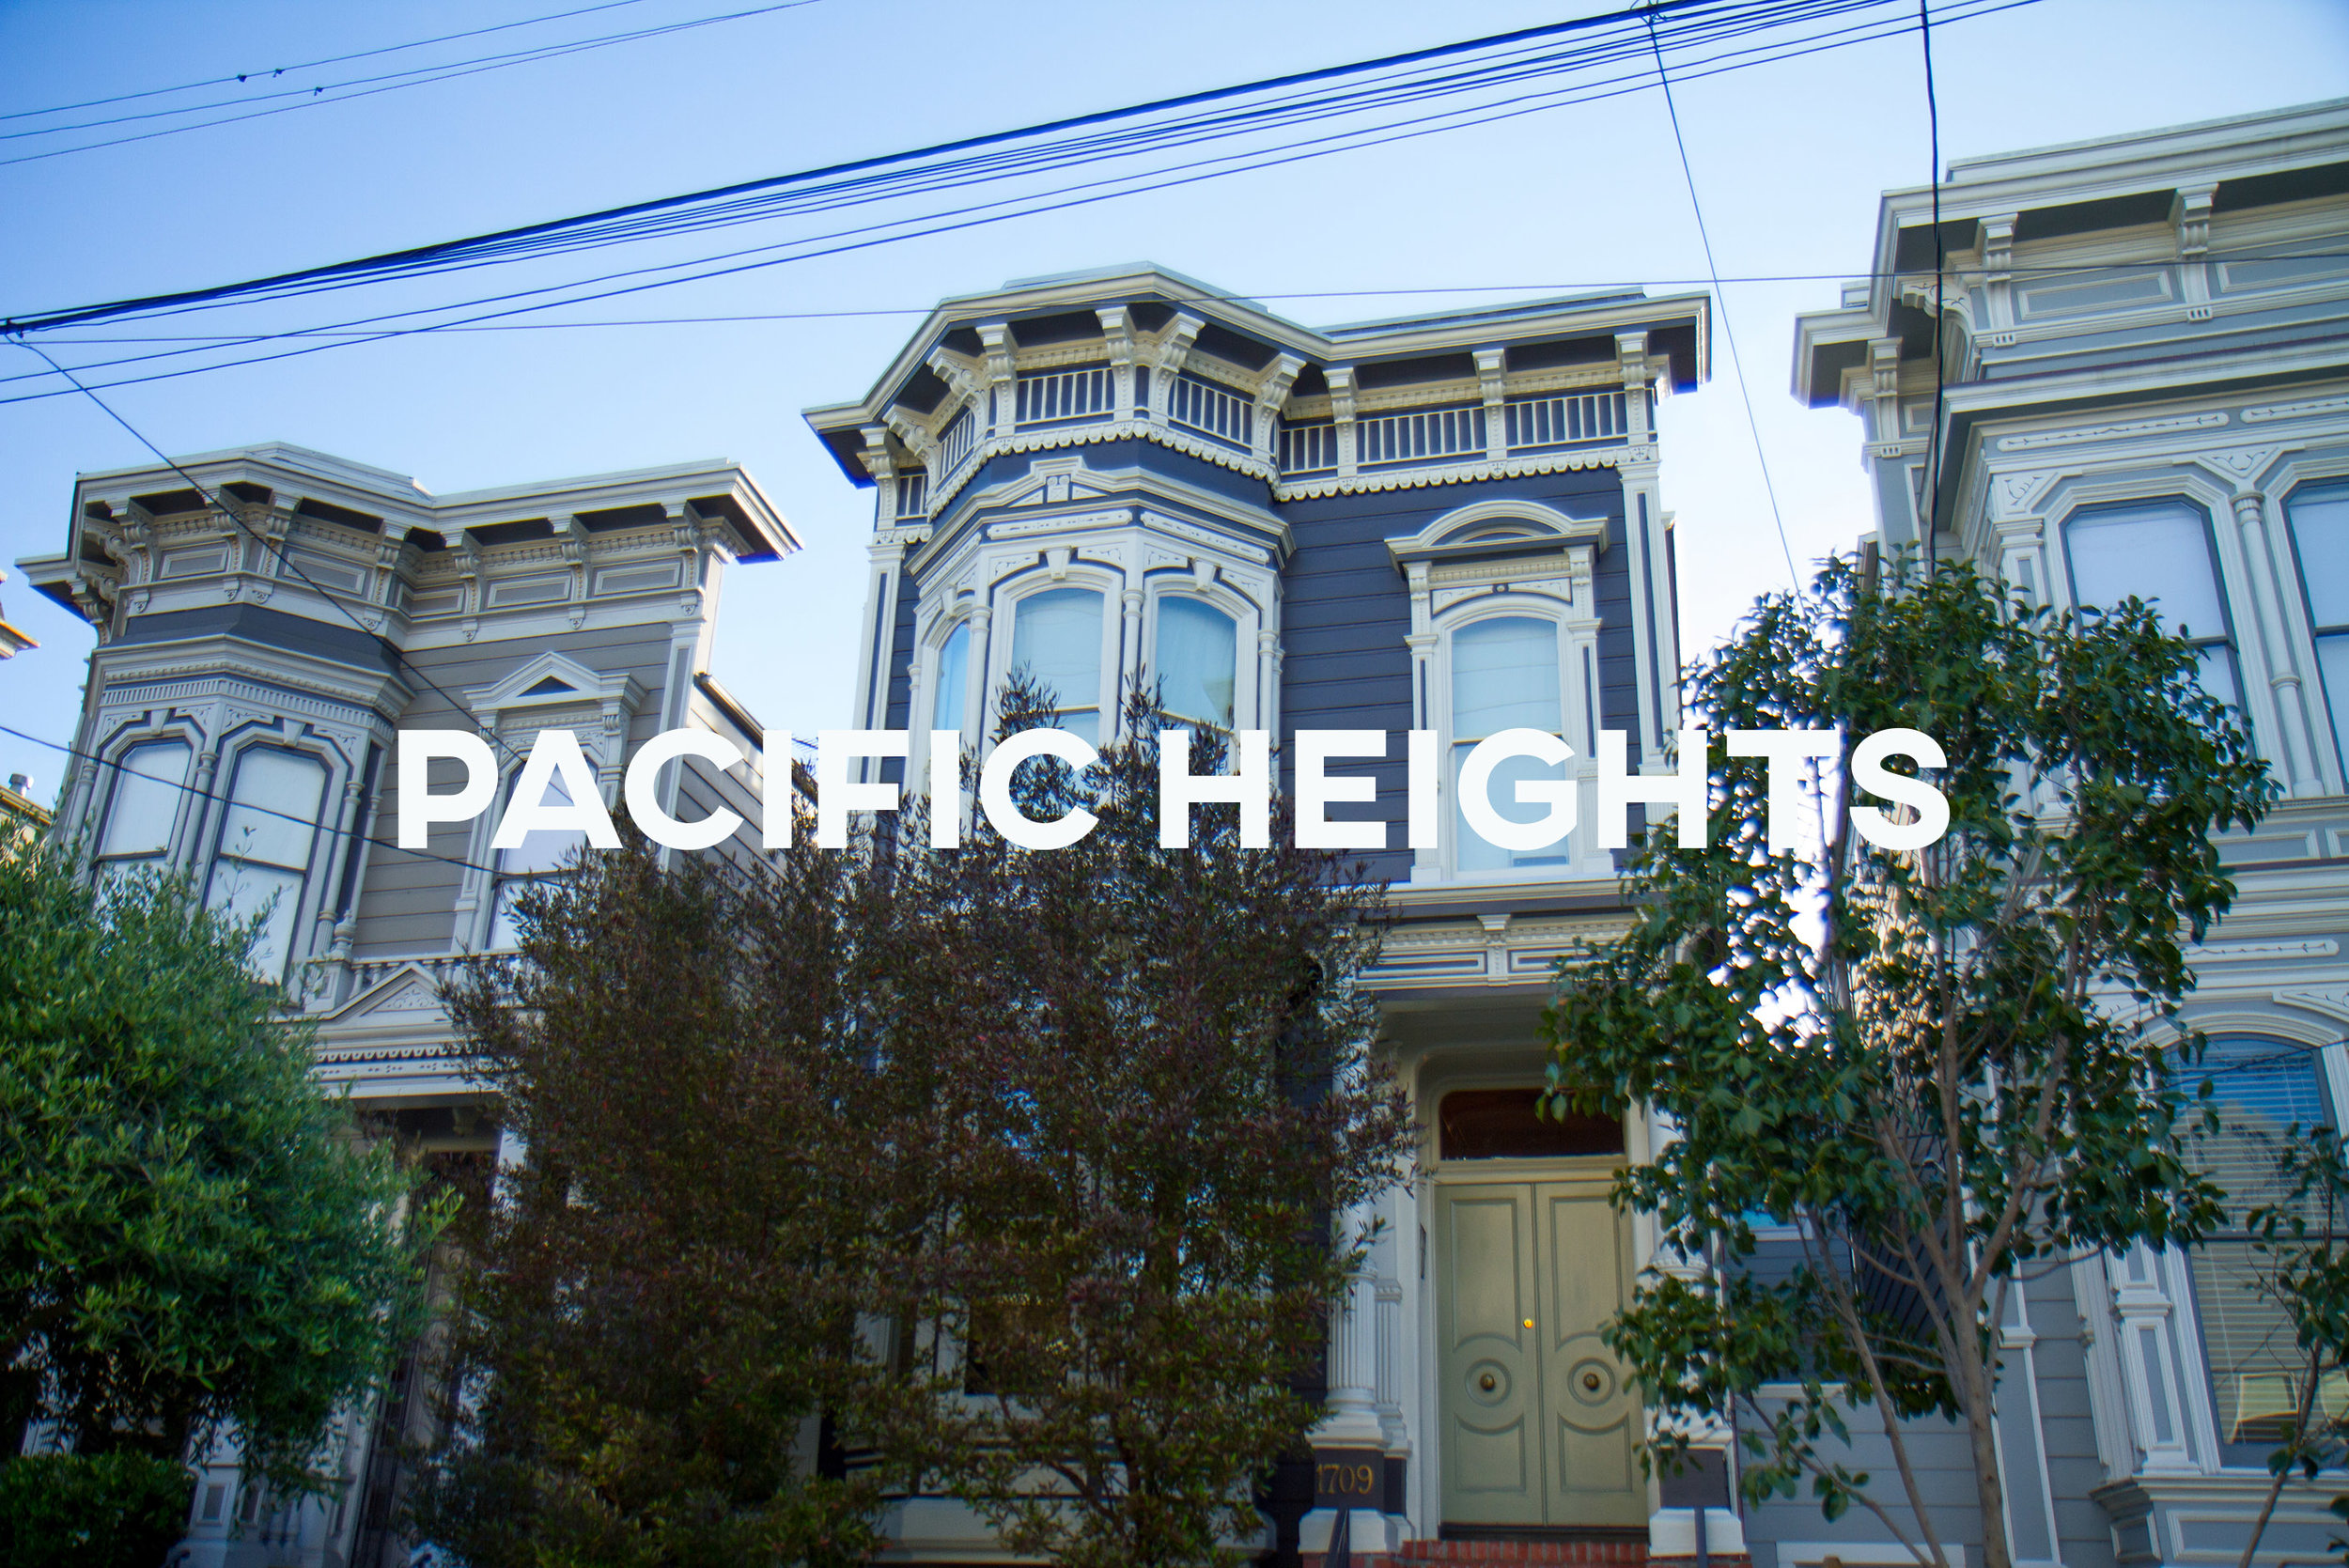 Pacific Heights - An elegant area that embodies the idea of San Francisco